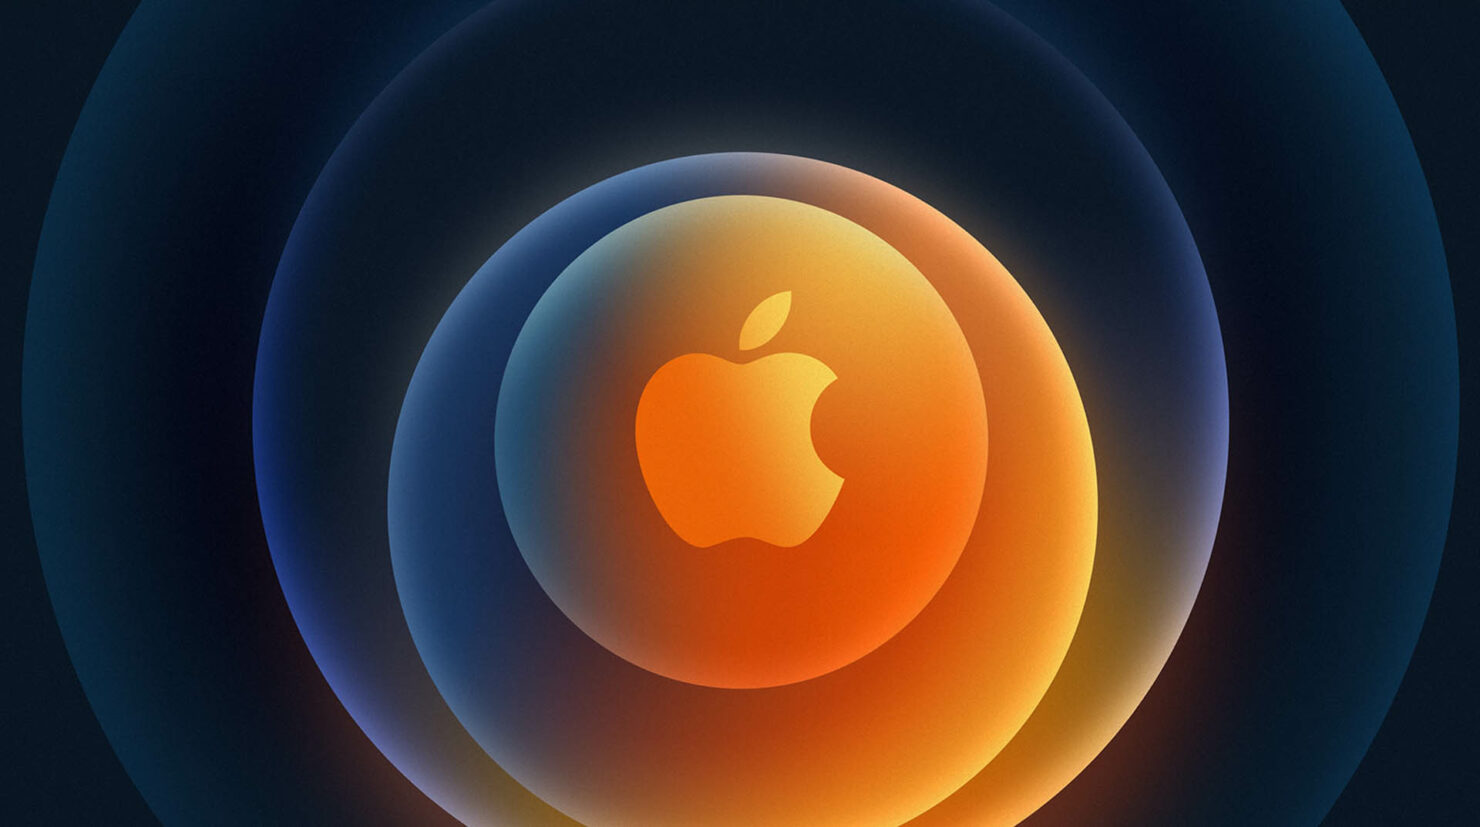 Apple Announces New 'Hi, Speed' iPhone 12 Event for October 13